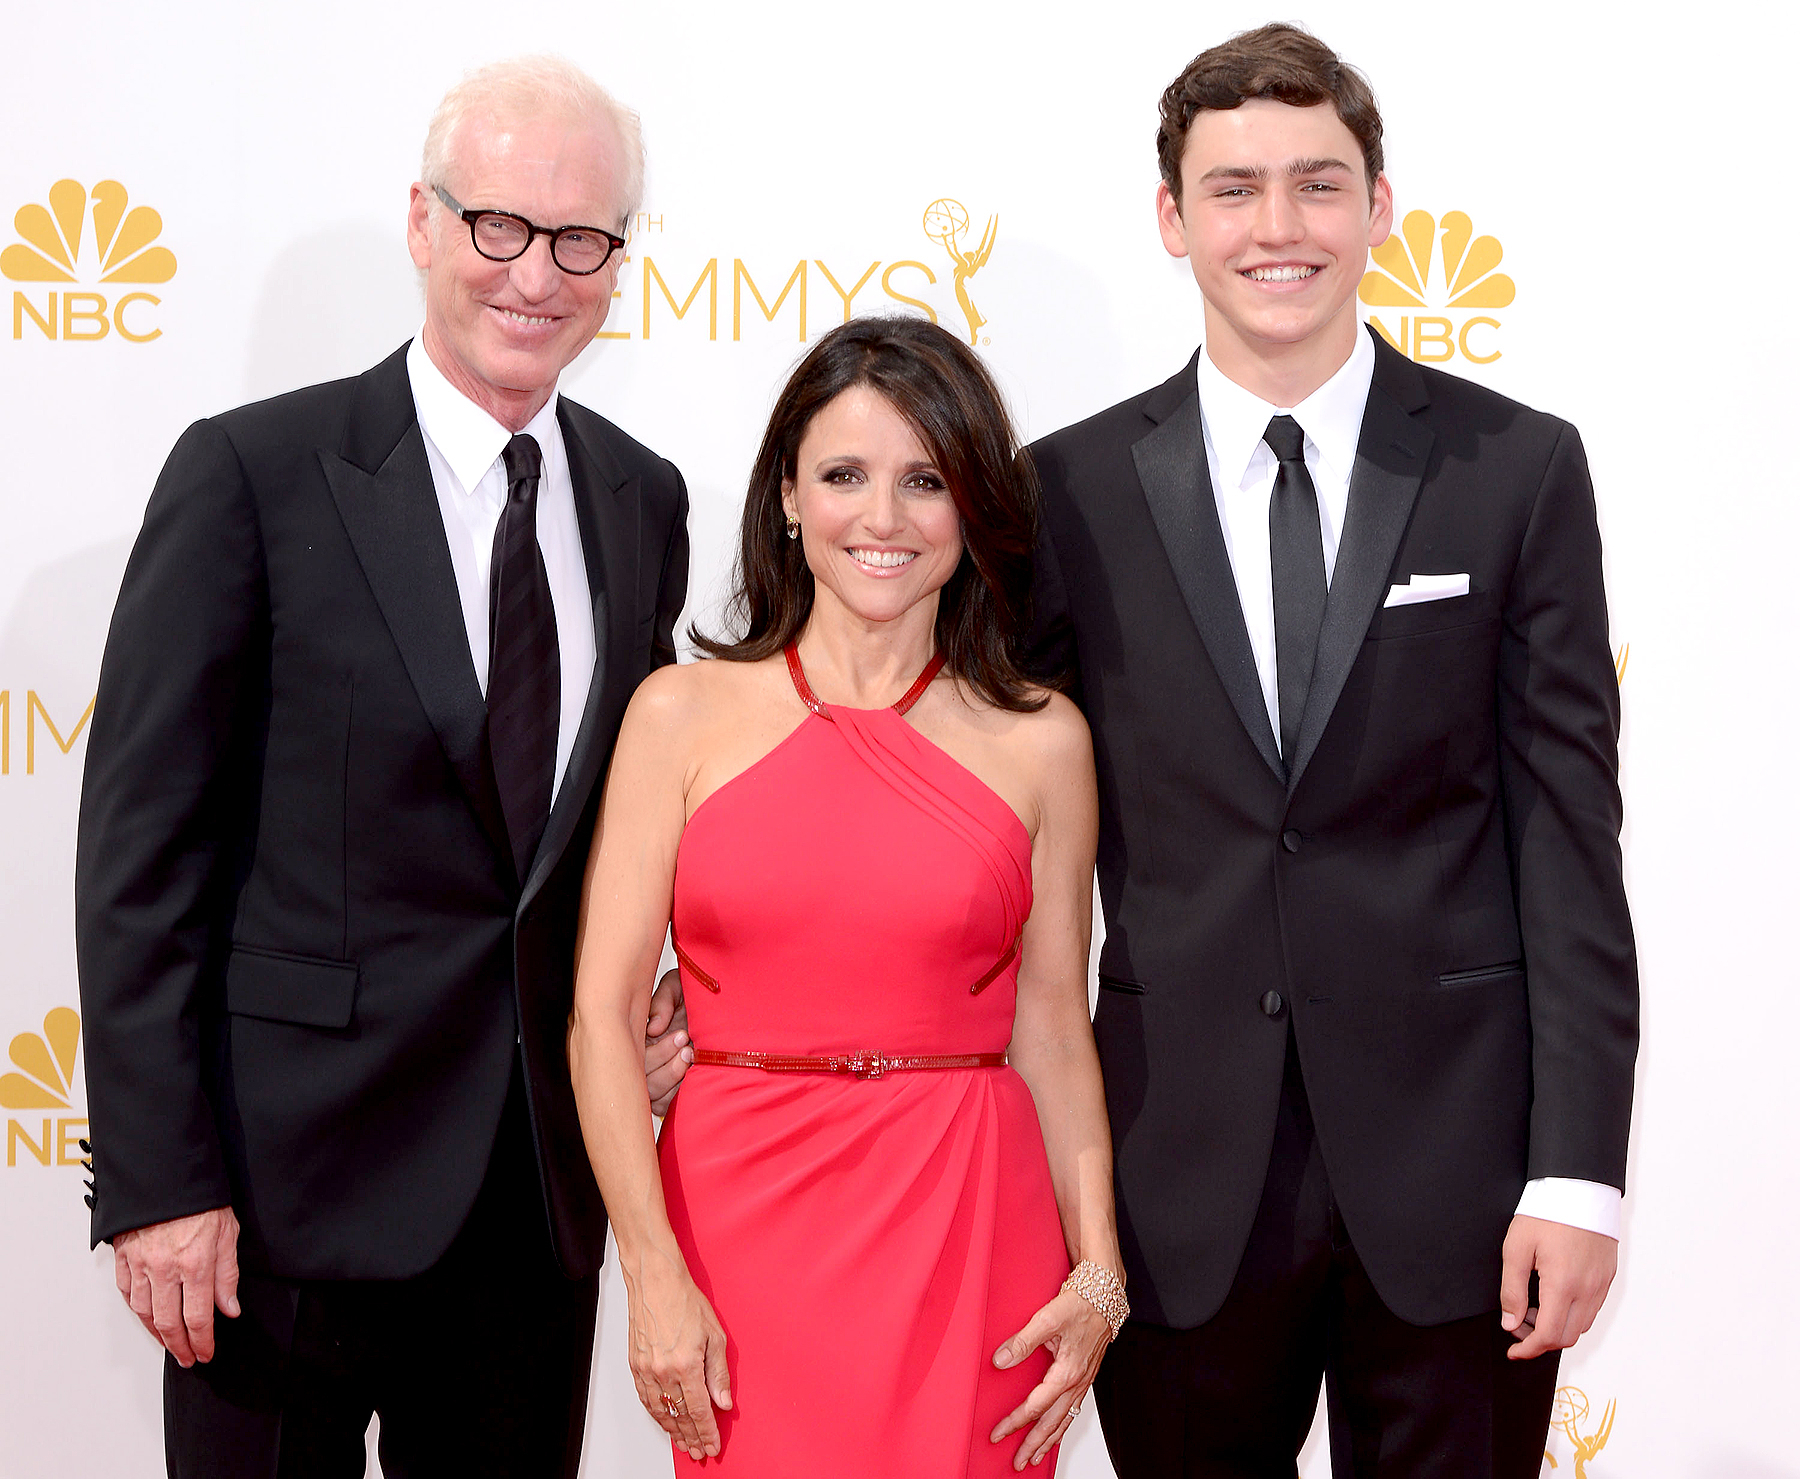 Julia Louis-Dreyfus (C), Brad Hall (L), and Charles Hall (R) arrive to the 66th Annual Primetime Emmy Awards at Nokia Theatre L.A. Live on August 25, 2014 in Los Angeles, California.